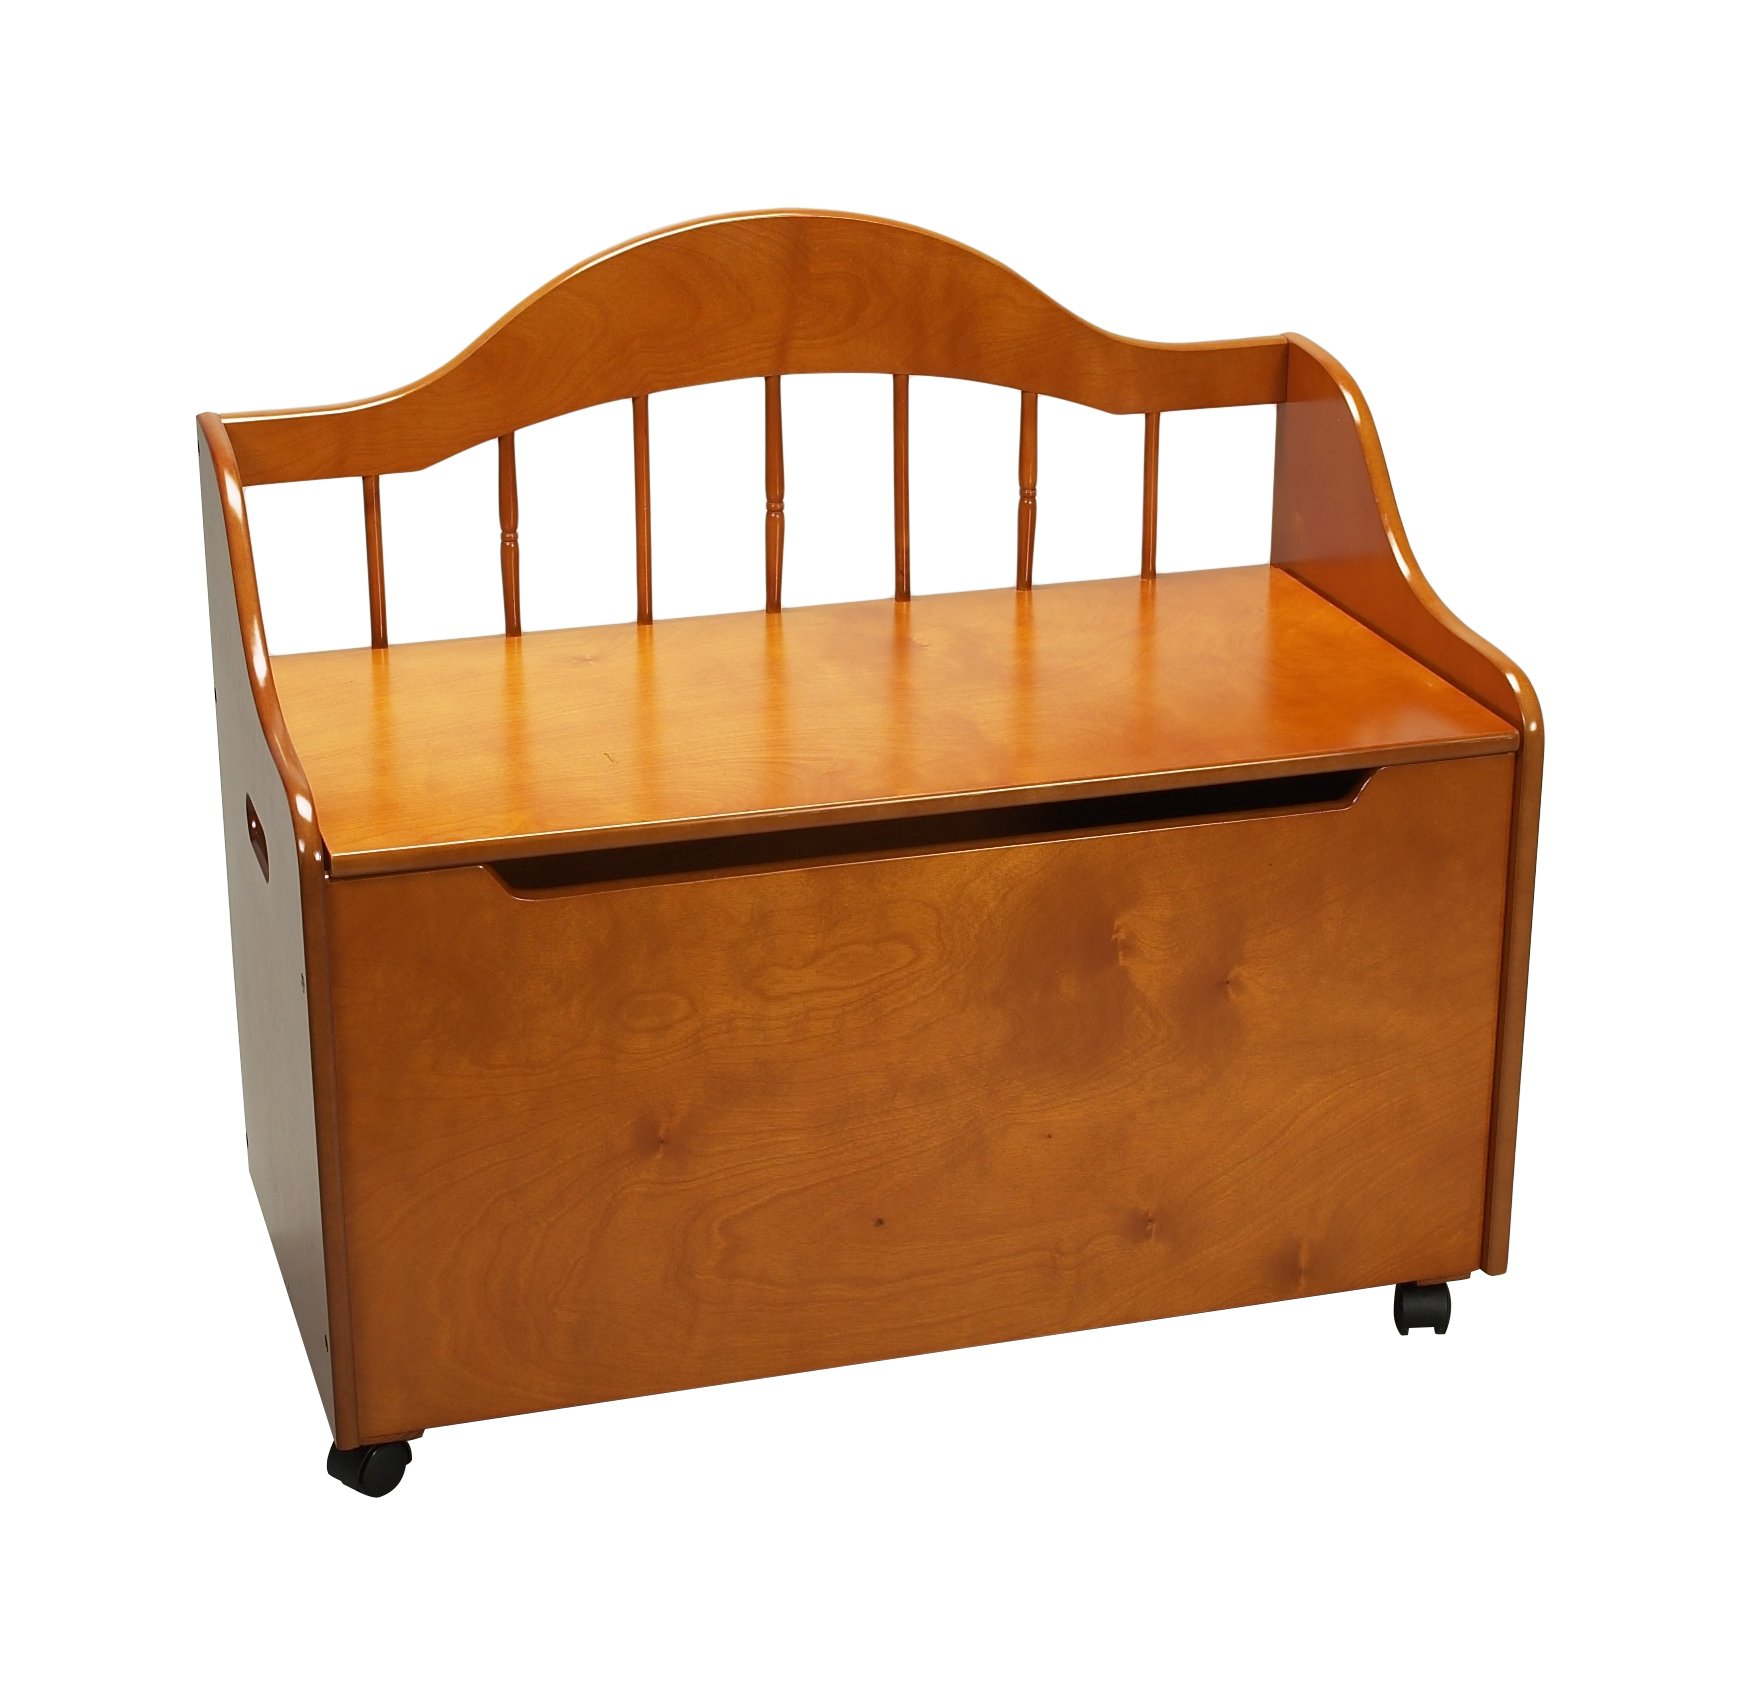 Gift Mark Honey Deacon Style Toy Box with Spindle Back and Casters, Honey